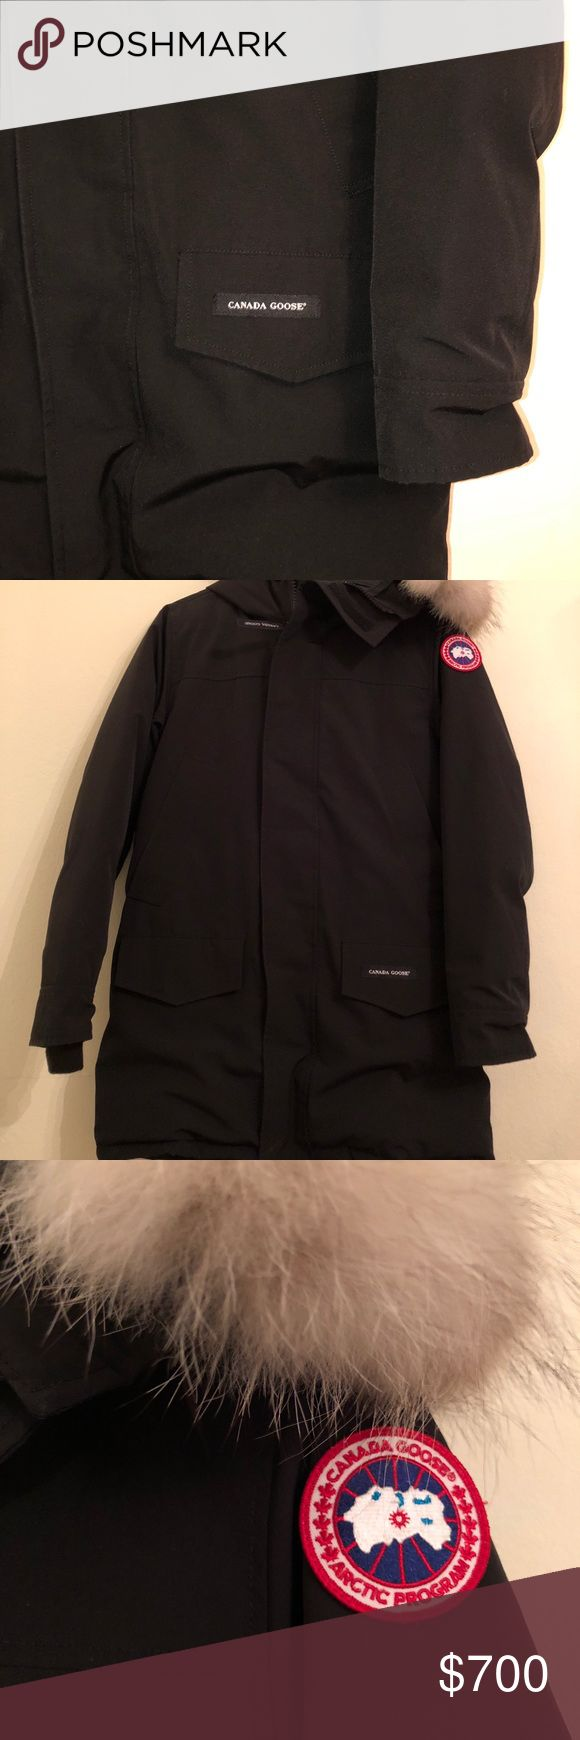 [100% AUTHENTIC] Canada Goose: Langford Parka MENS Canada Goose parka, but it fits females as well. Super warm and cozy for the winter. Barely used and has no imperfections and looks *BRAND NEW*. Comes from a no smoking home. Accepting offers on Poshmark ONLY. PRICE IS FIRM. Canada Goose Jackets & Coats